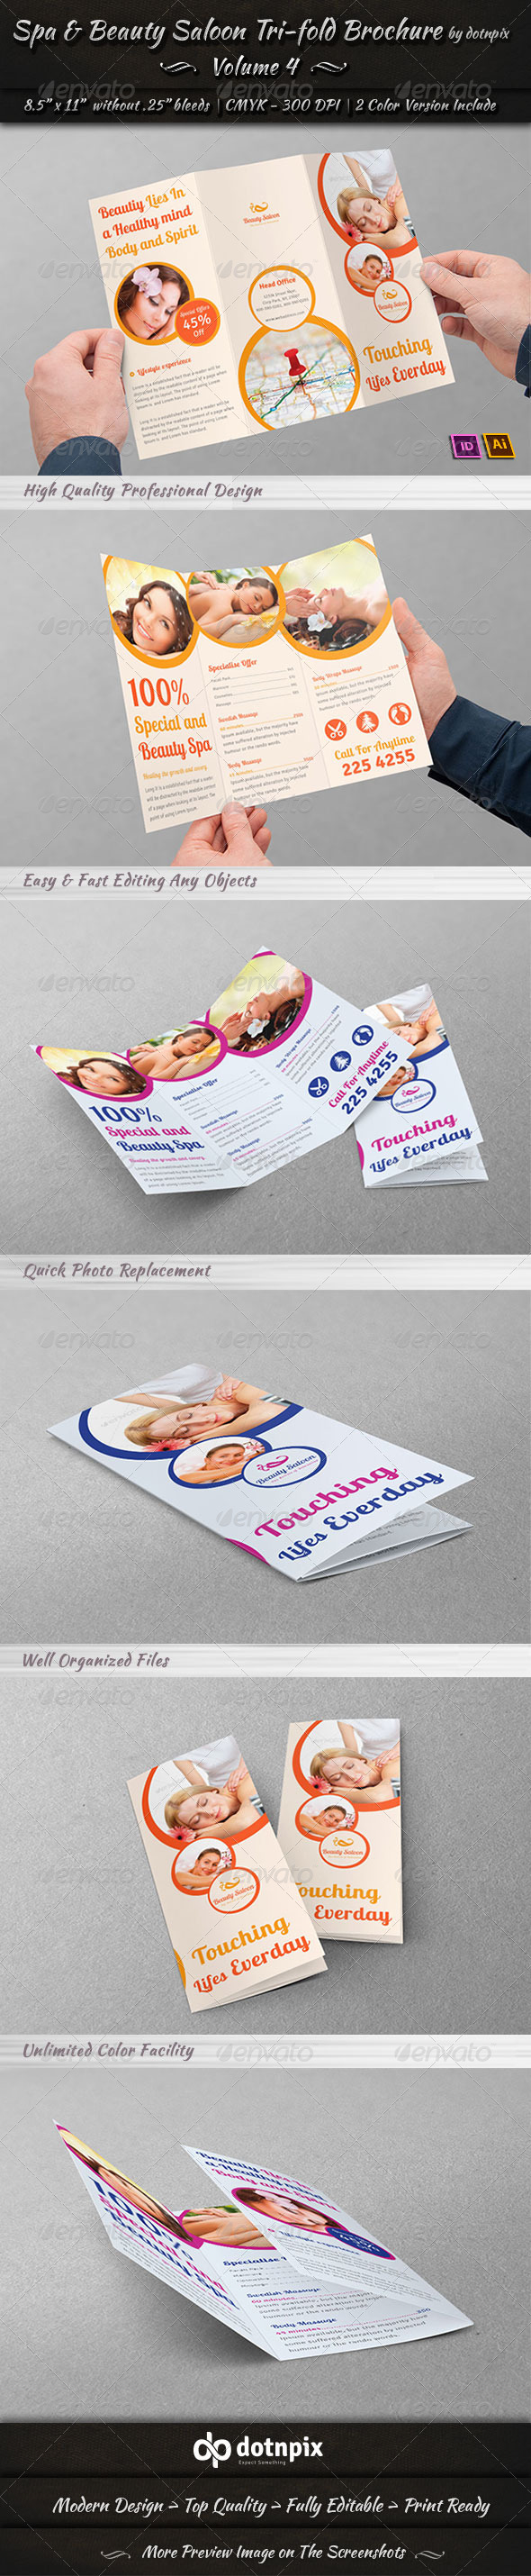 Spa & Beauty Saloon Tri-Fold Brochure Volume 4